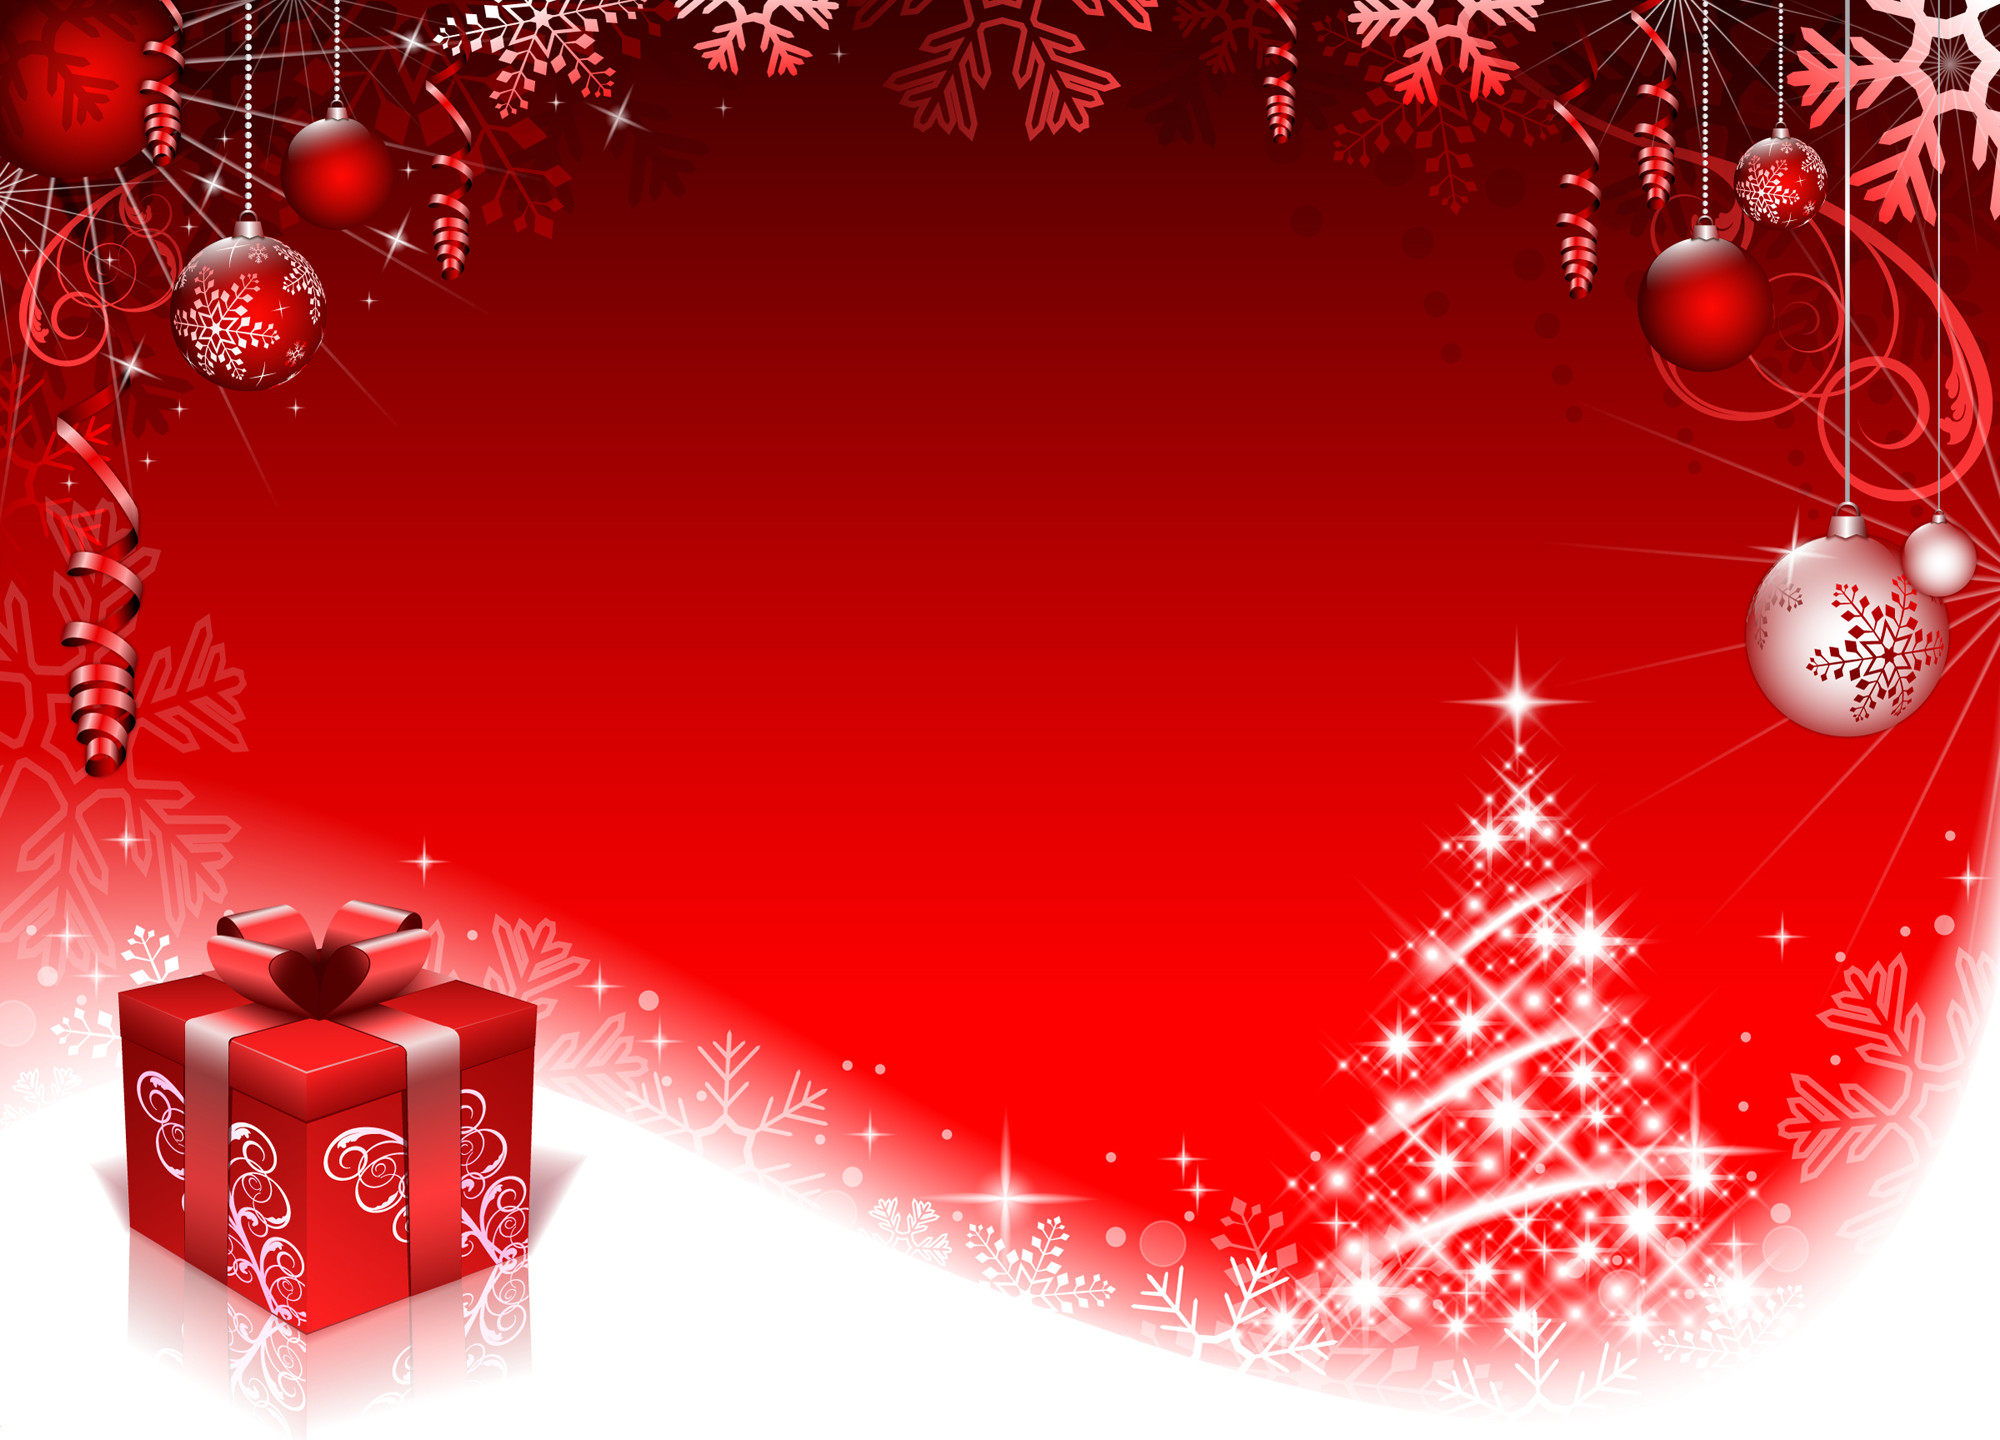 Christmas Backgrounds for Photoshop   Wallpapers9